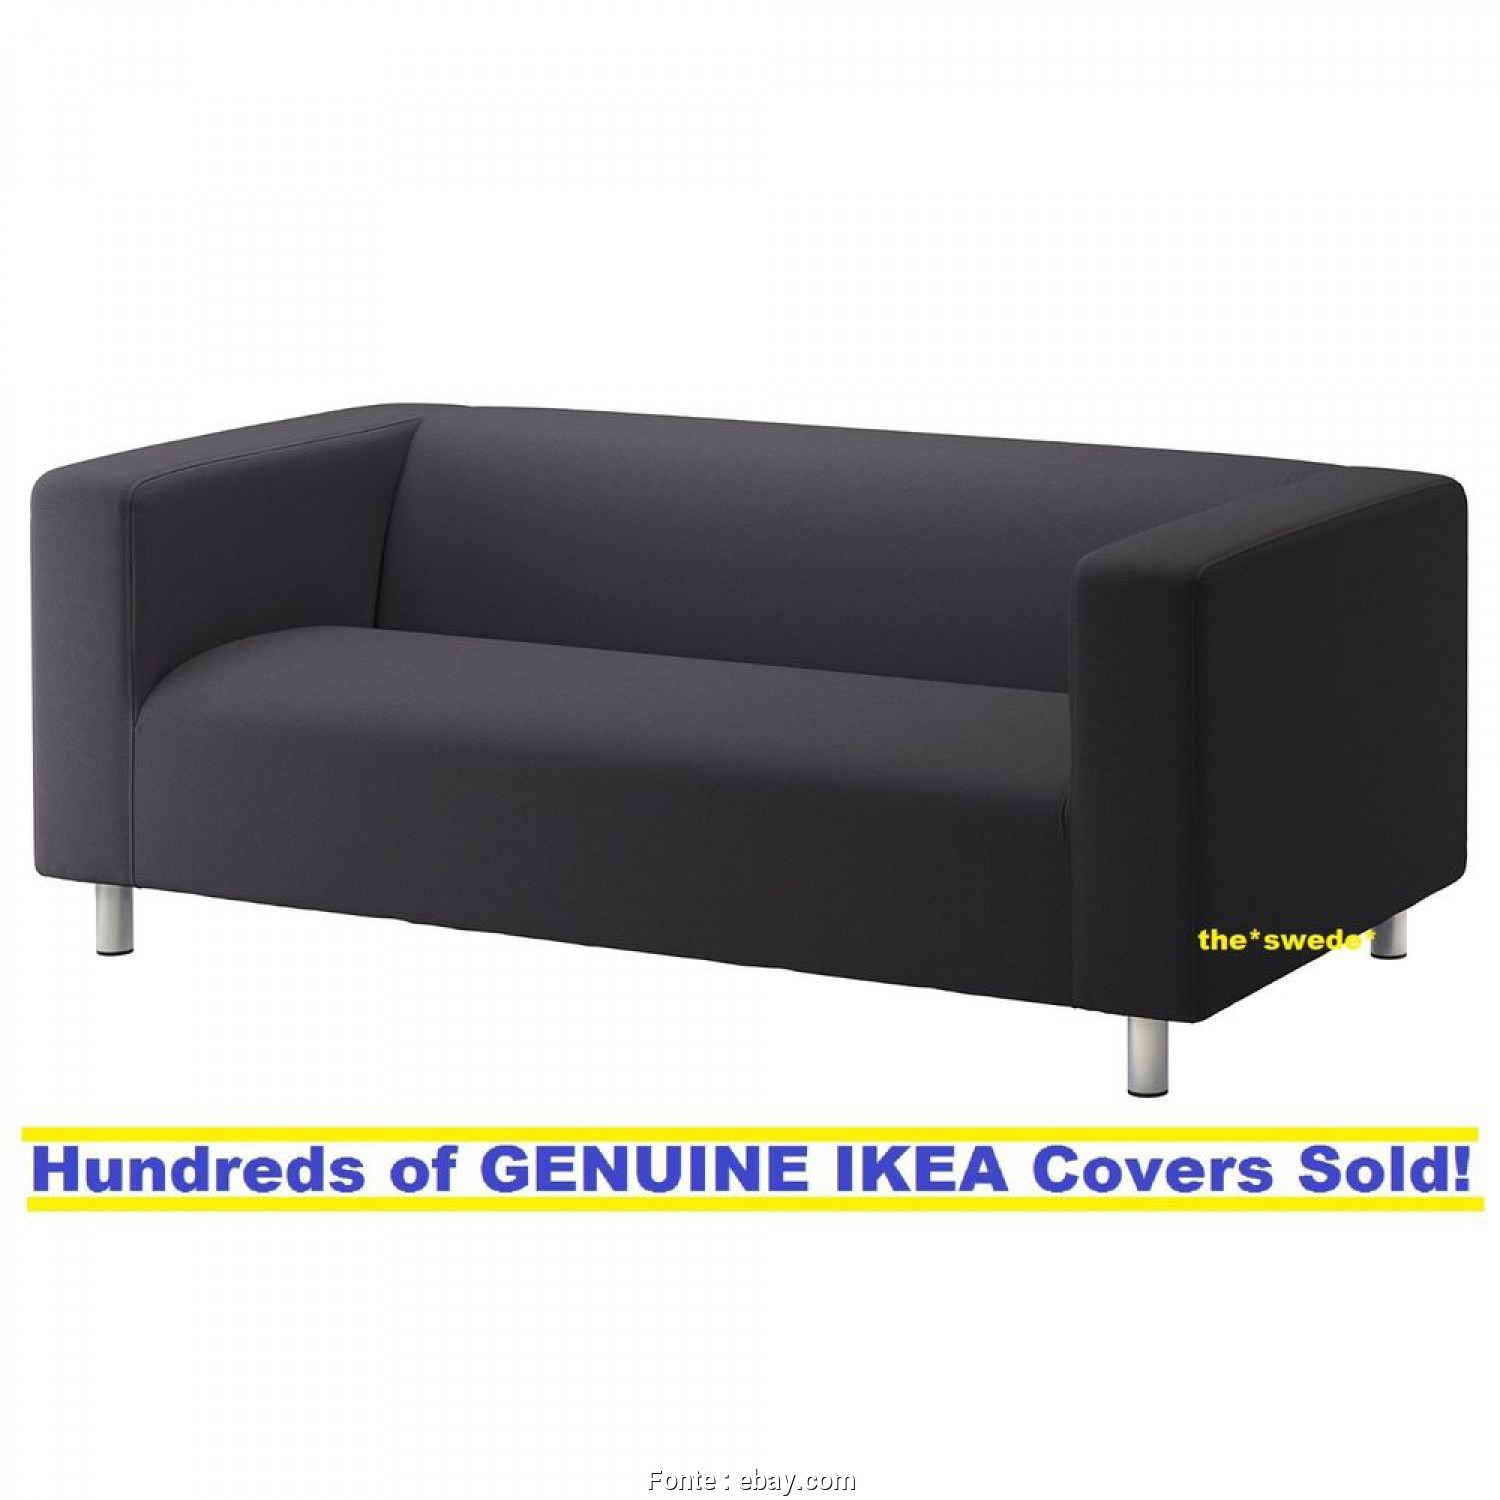 Ikea Klippan Sofa Ebay, Freddo Details About Ikea KLIPPAN Loveseat (2 Seat Sofa) Cover Slipcover KABUSA DARK GRAY New! SEALED